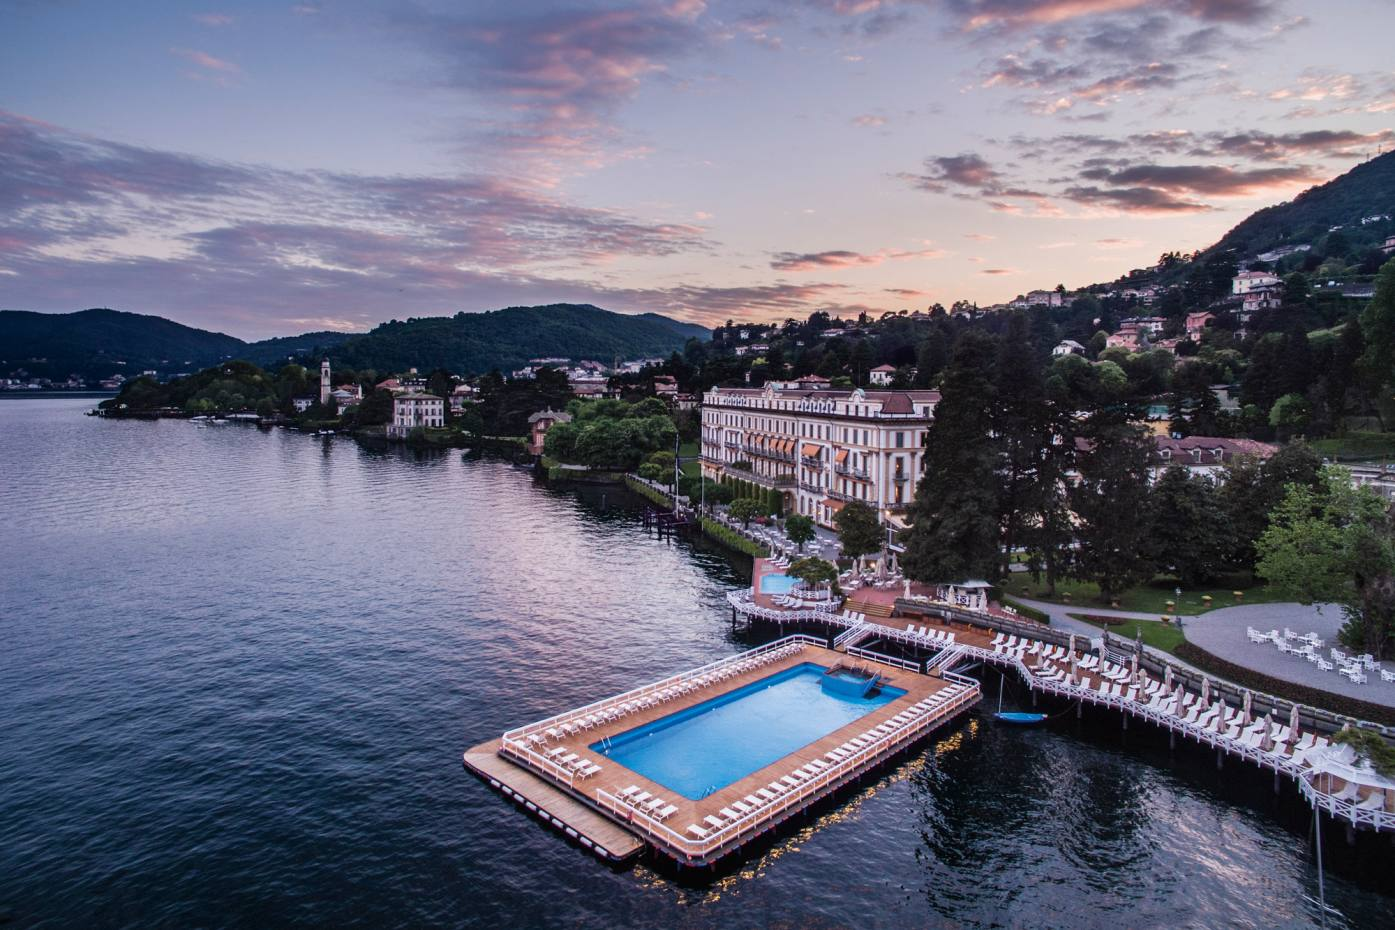 Villa d'Este hotel will play host to the Wine Symposium